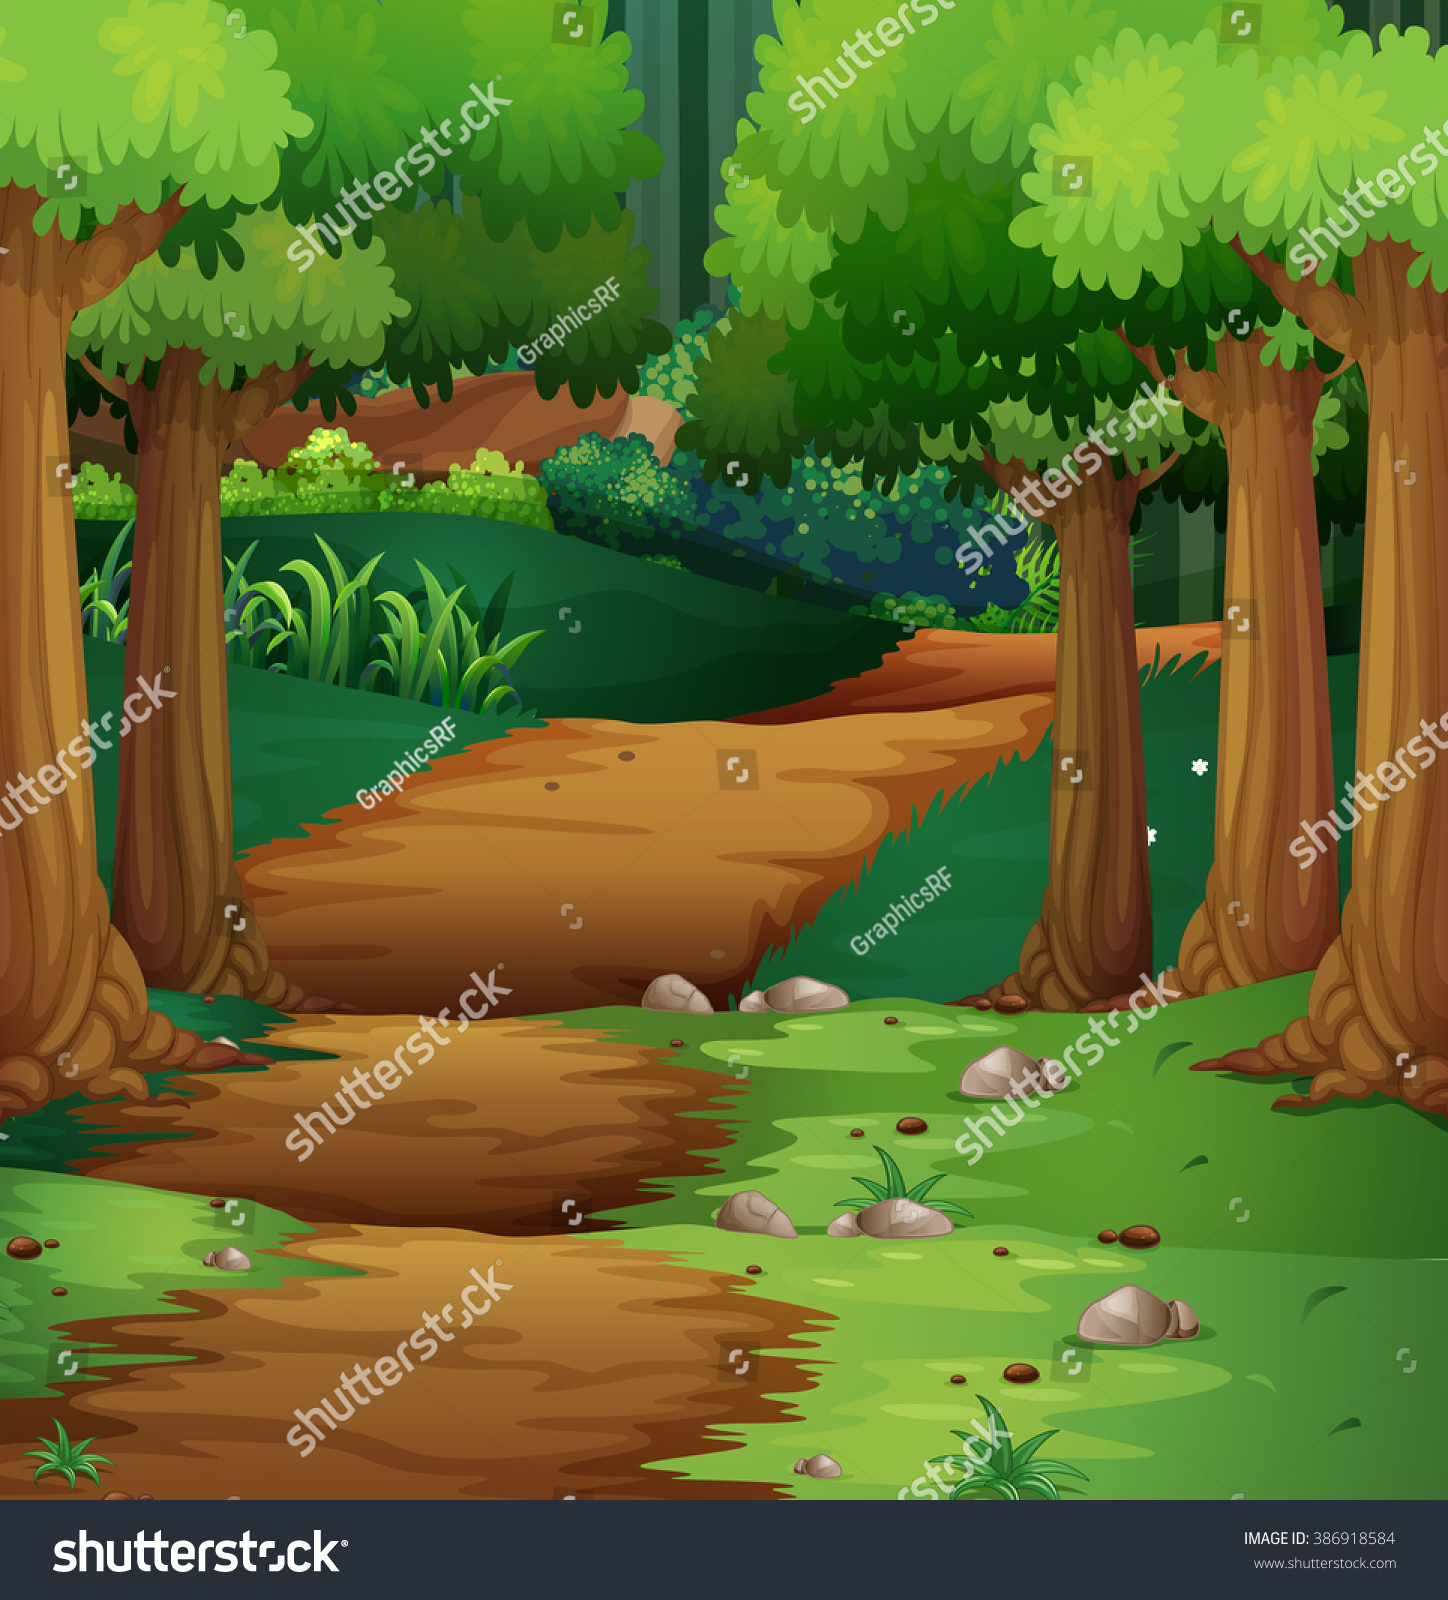 Forest Scene Dirt Road Middle Illustration Stock Vector 386918584 ...